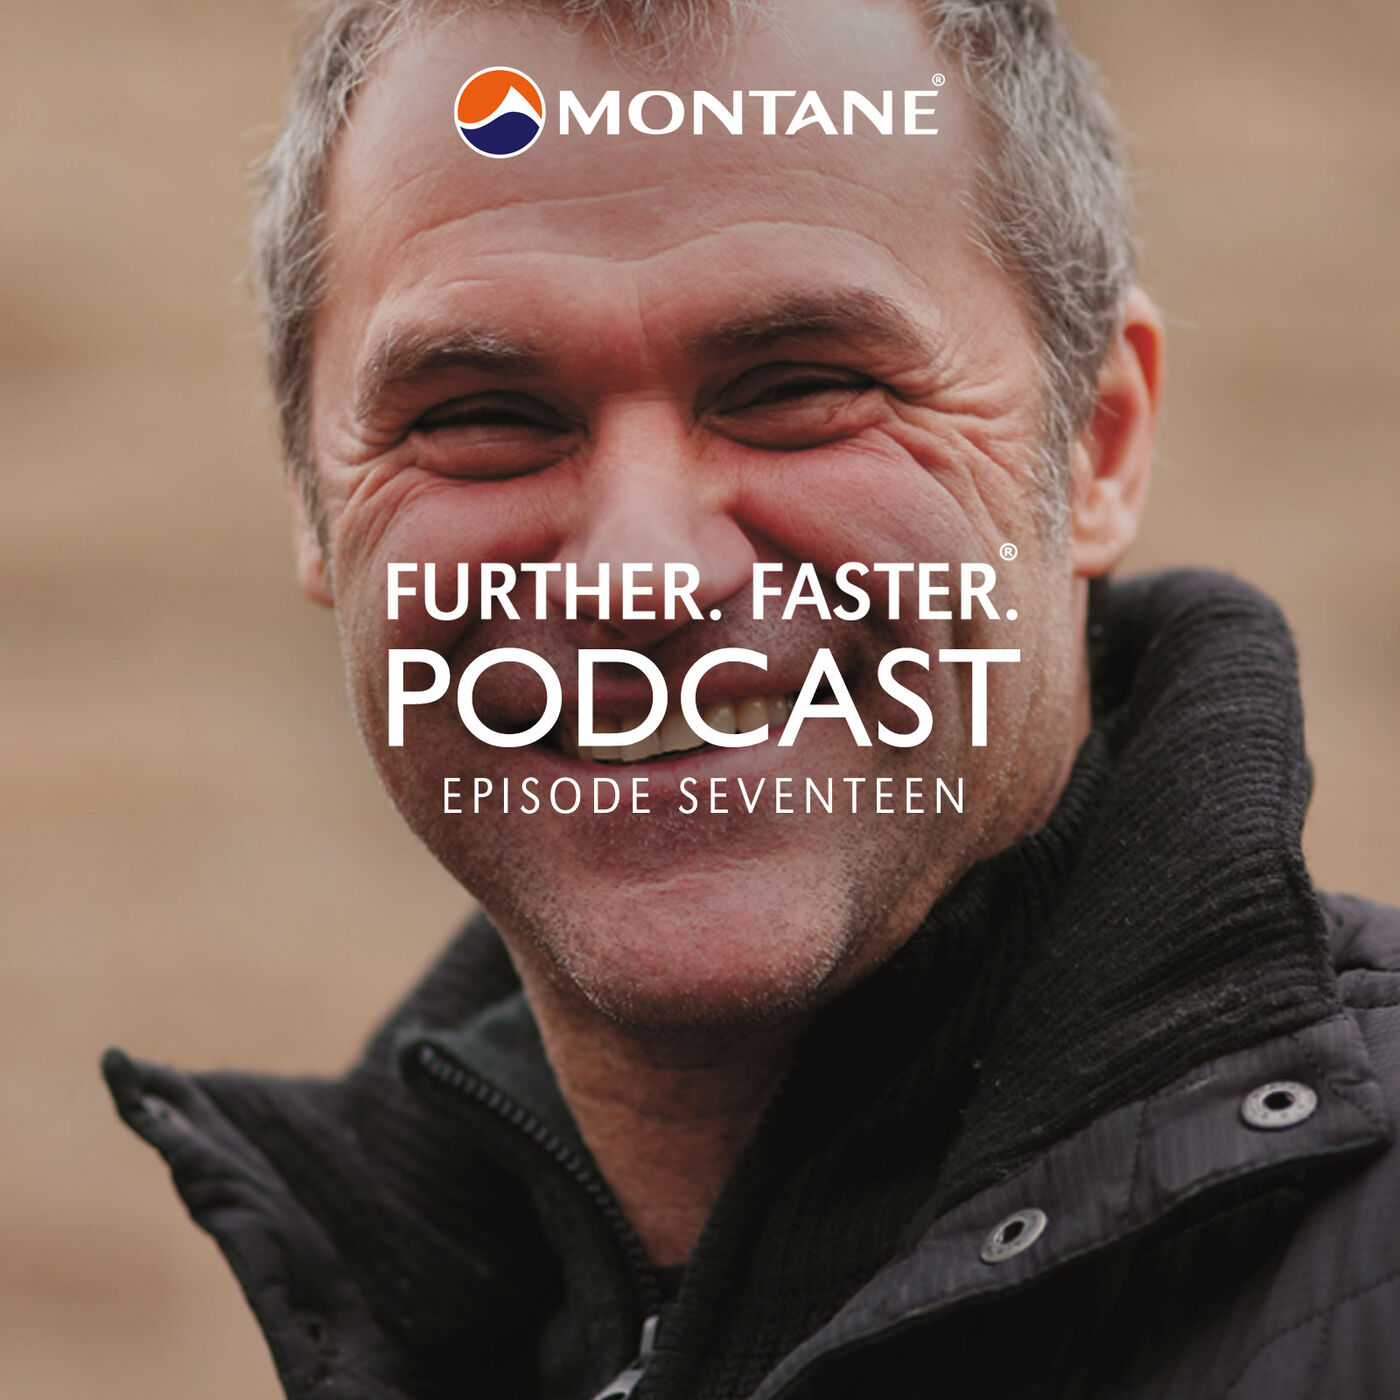 Further. Faster. Podcast Ep 17 (Jerry Moffatt - The Mastermind of Climbing)